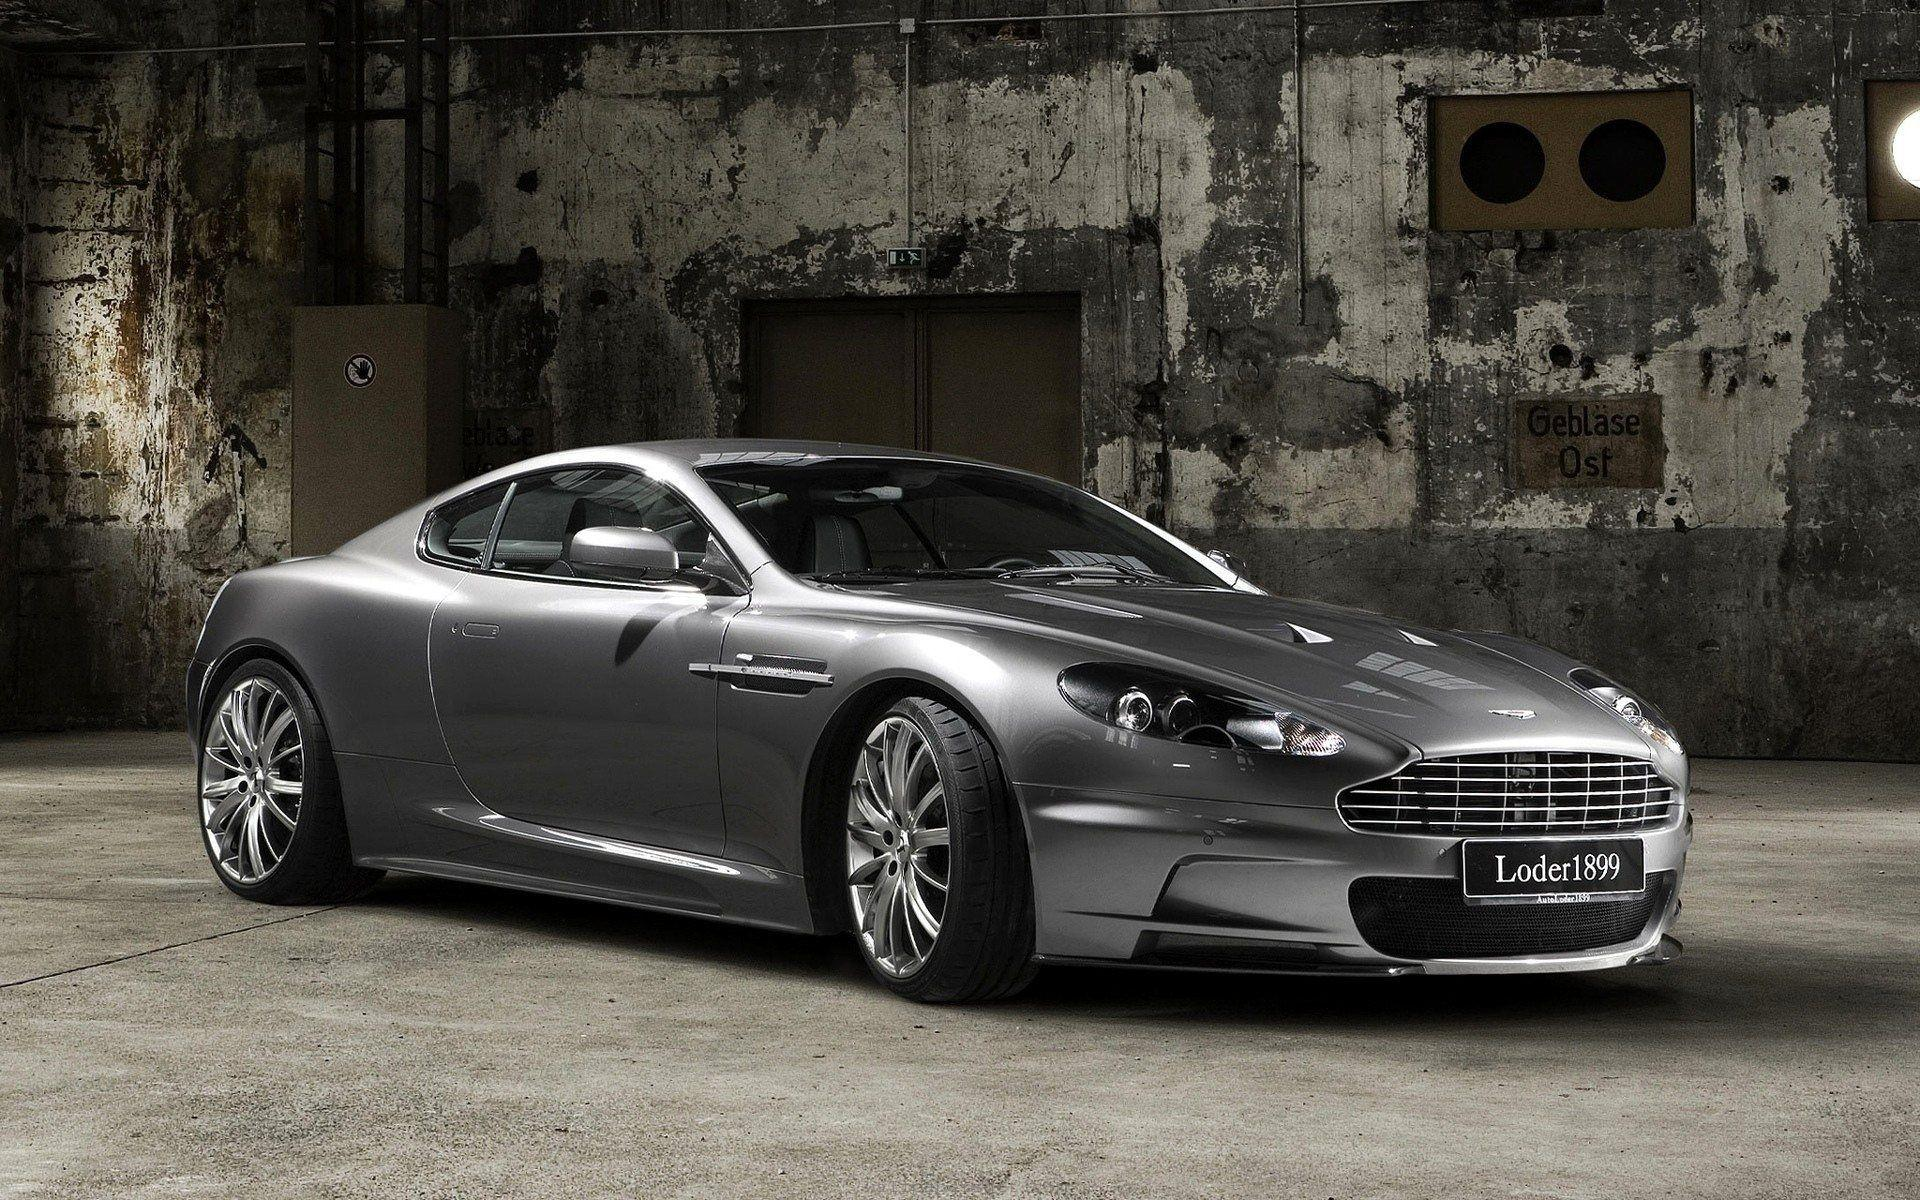 aston martin db9, photo #5